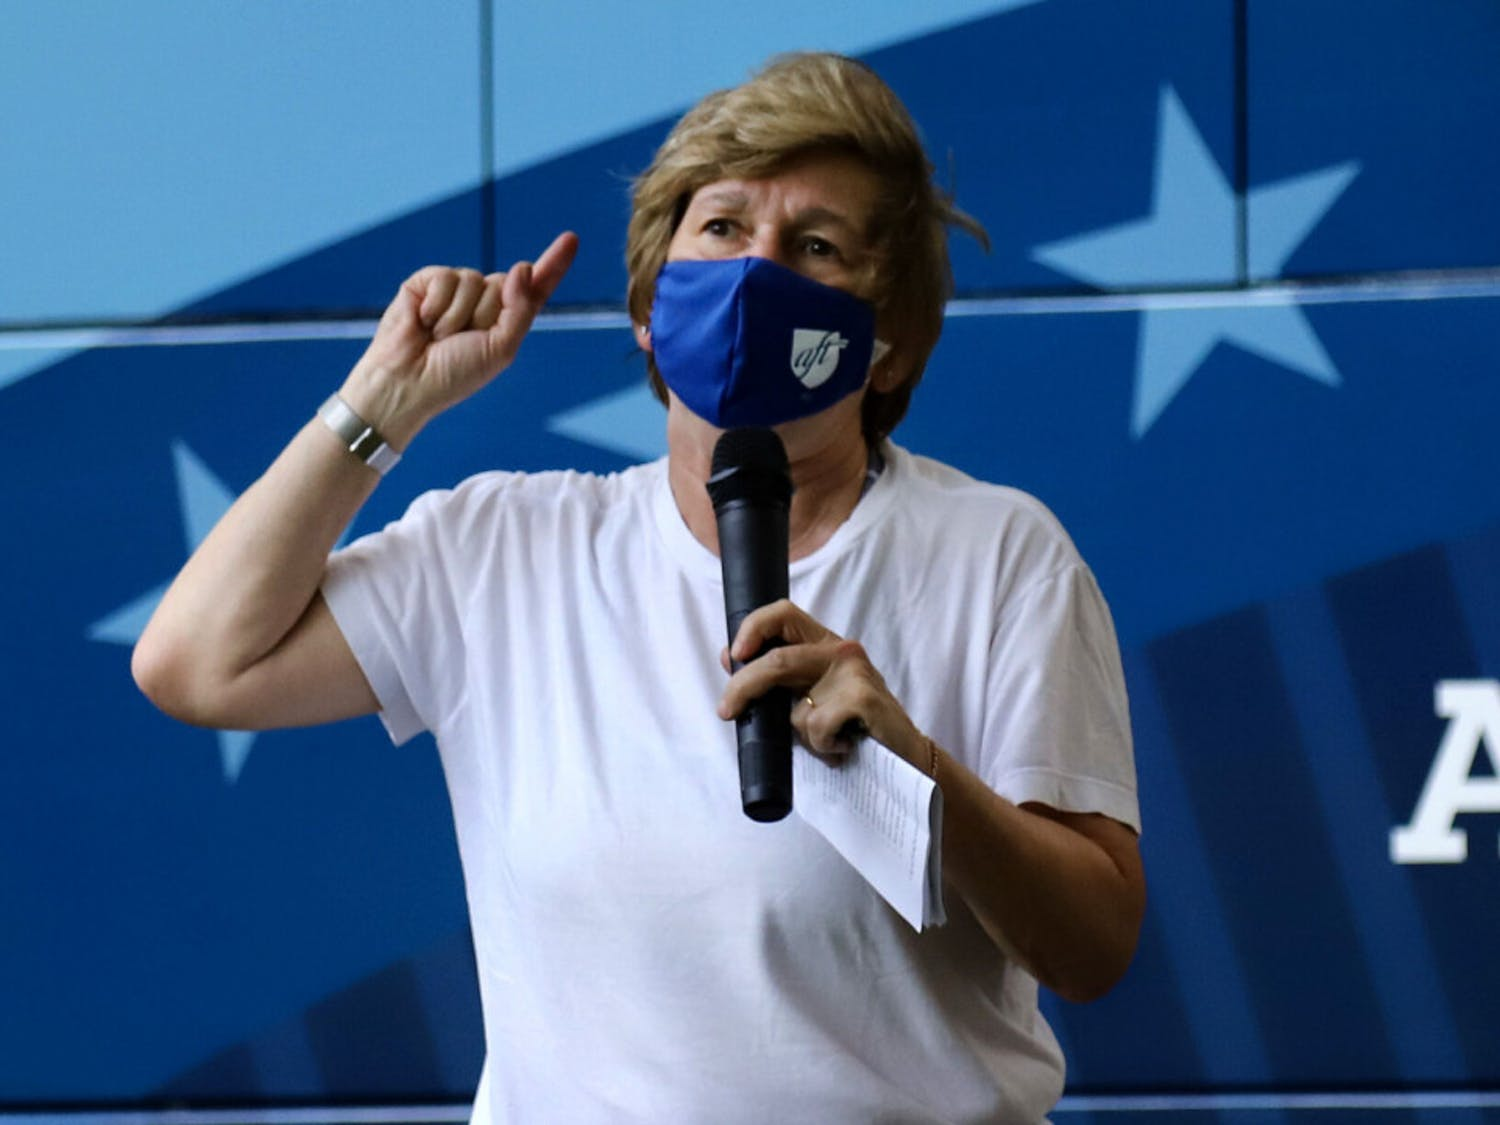 Randi Weingarten, the president of the American Federation of Teachers, speaks about education budgets at an early voting rally hosted by AFT on Thursday, Oct. 29, 2020, at the First United Methodist Church.